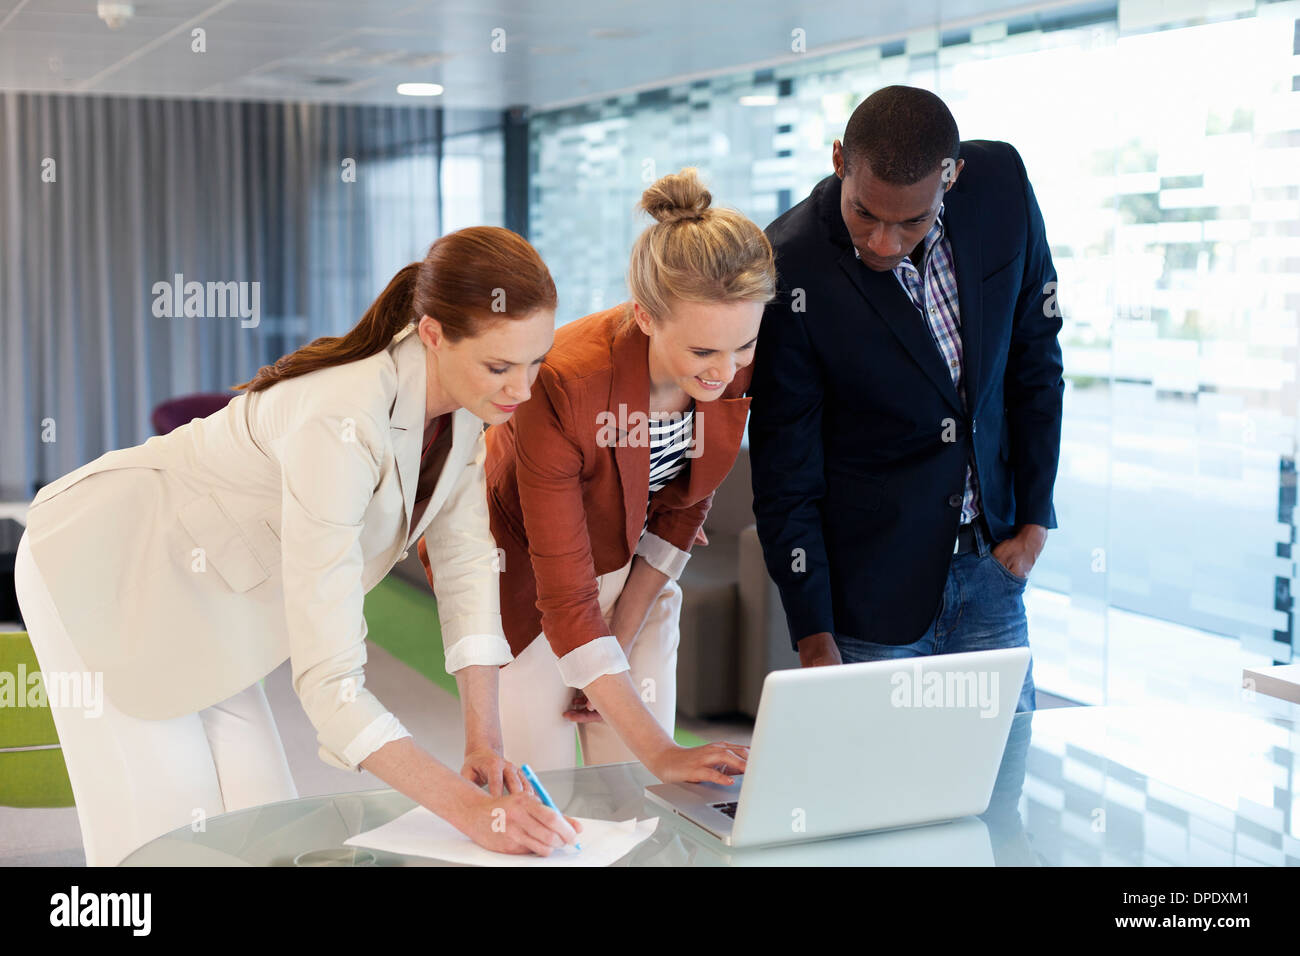 Businesspeople working on laptop and writing activity - Stock Image